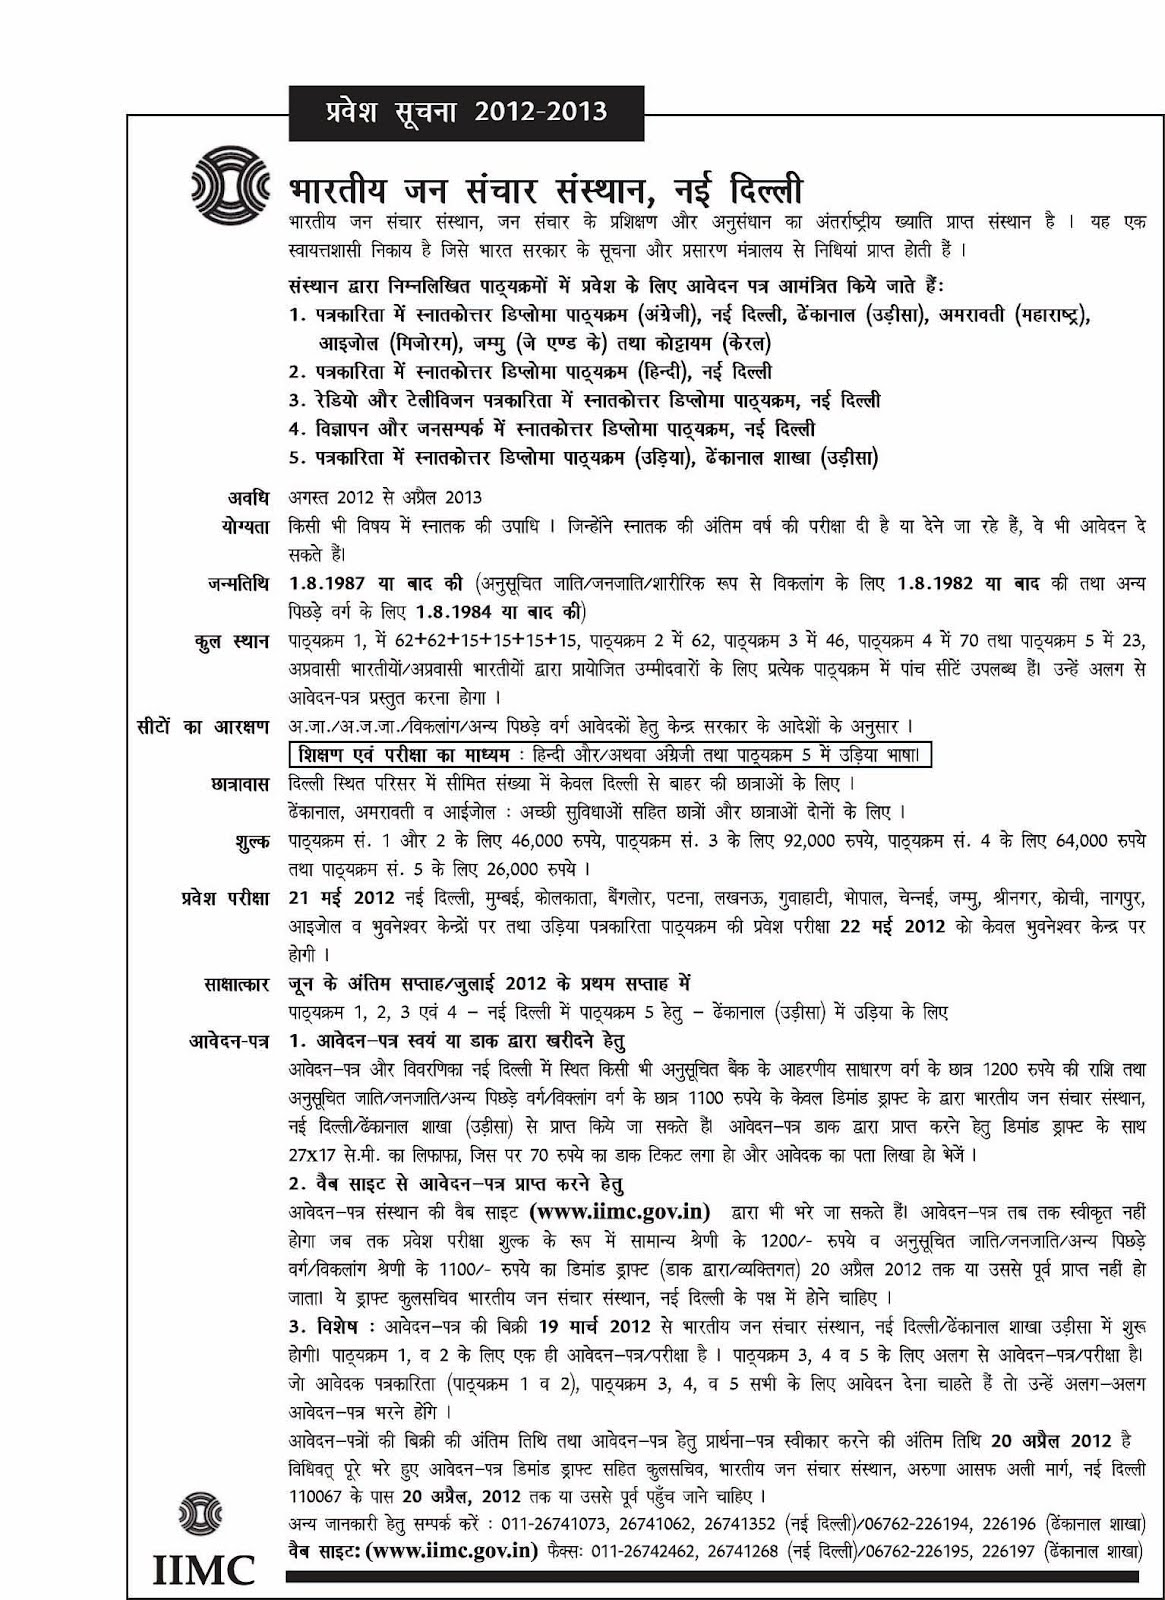 buy original essays online essay on terrorism in hindi language buy original essays online essay on terrorism in hindi language